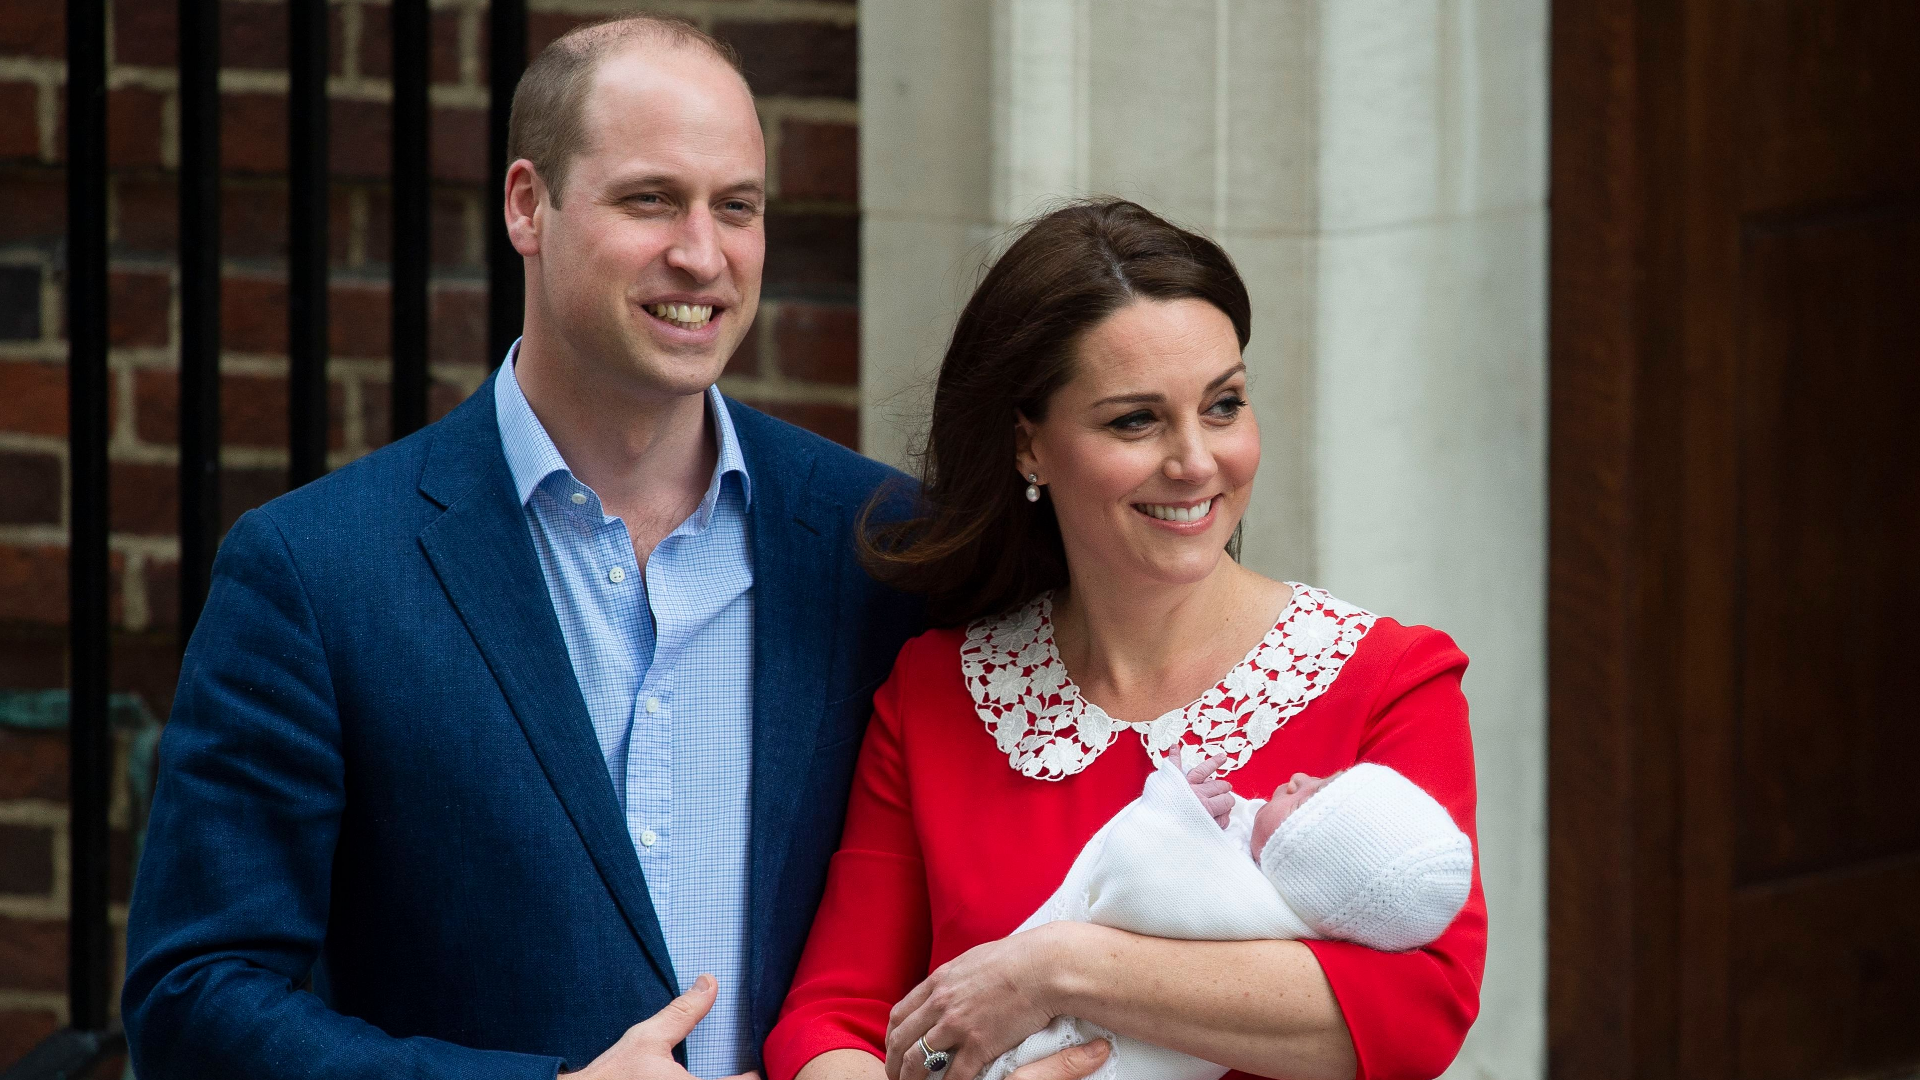 Mums Share How They Looked 7 Hours After Birth, Compared To Duchess Of Cambridge